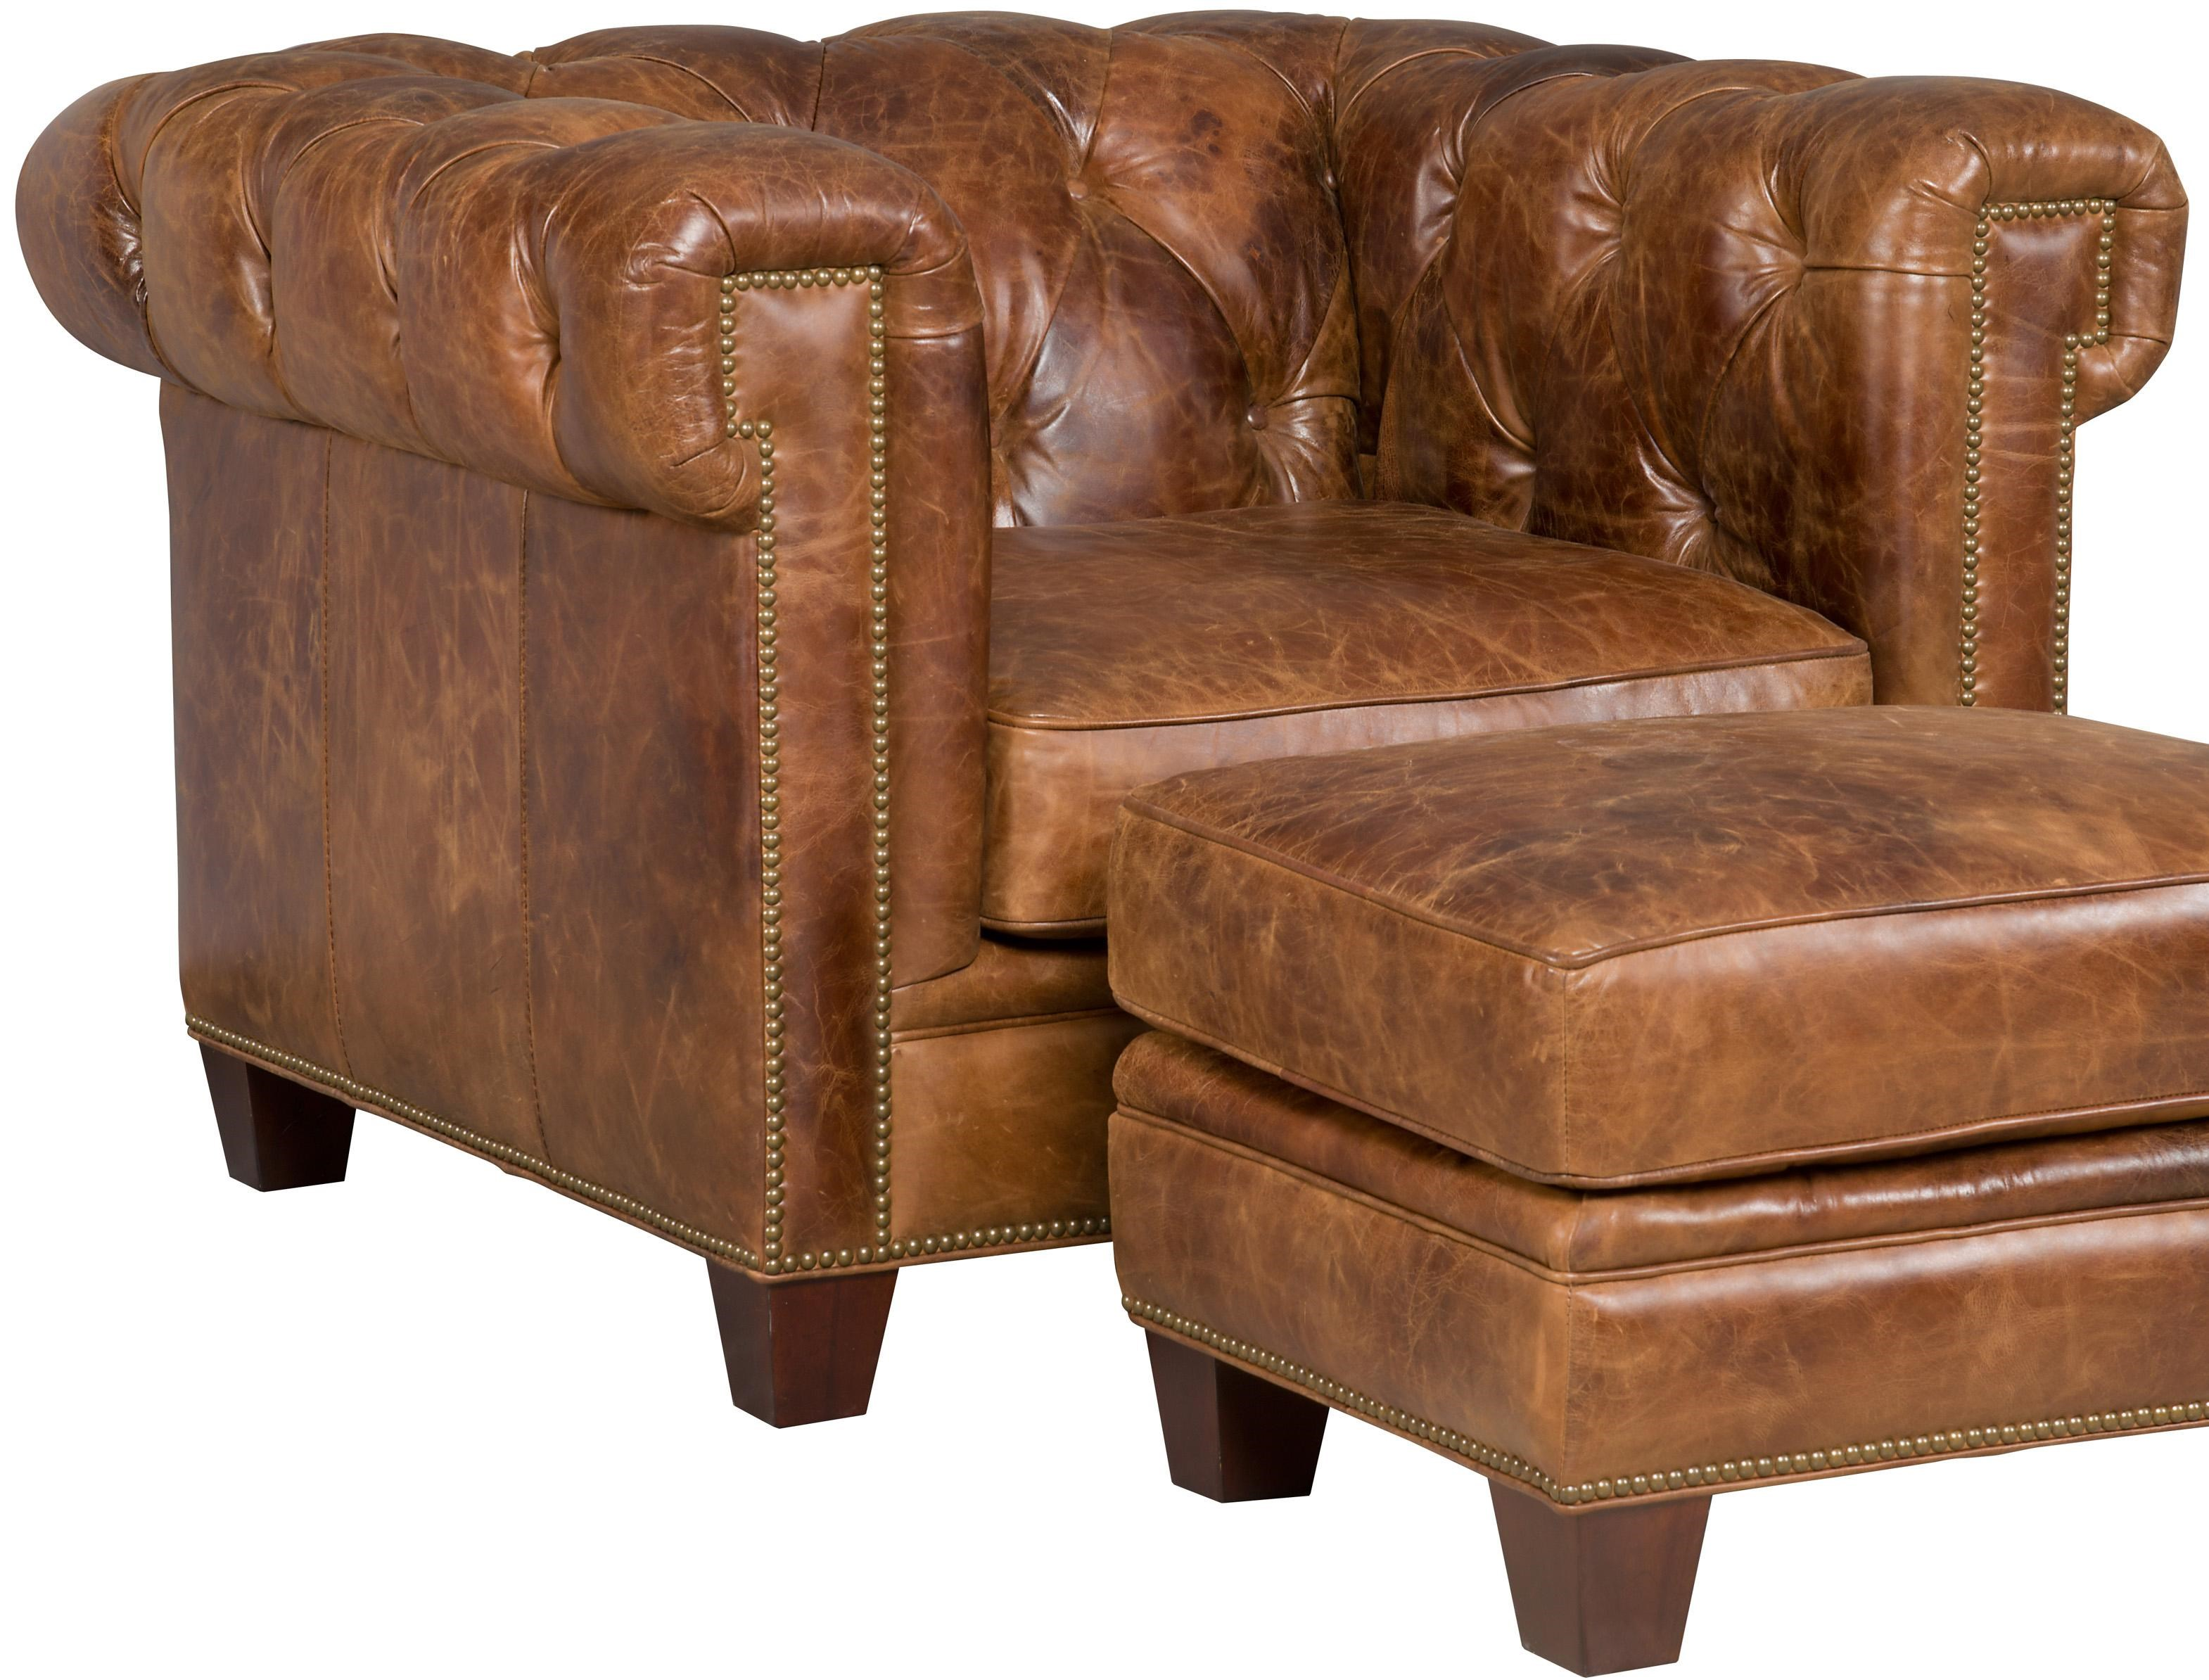 Charmant Hooker Furniture SS195 087 Transitional Chesterfield Chair With Track Arms  And Nailheads